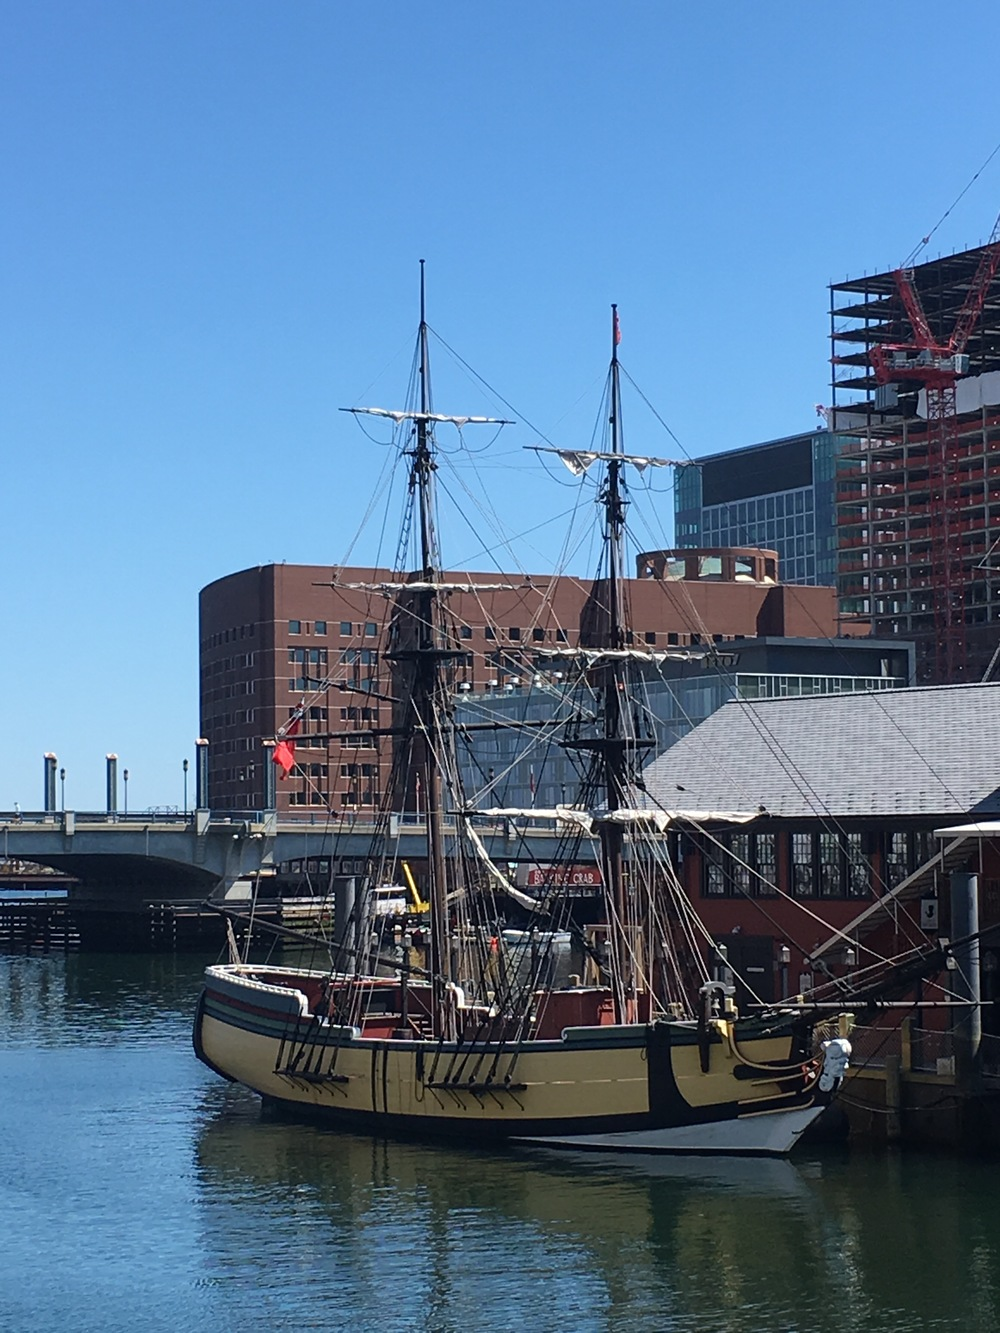 Boston Travel Guide - Lifestyle Blog - Things to do in Boston